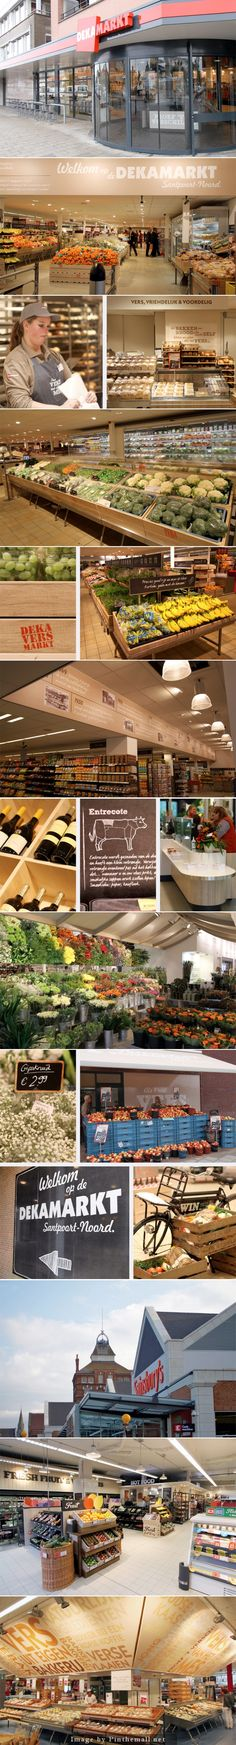 DekaMarkt, one of Holland's oldest grocery chains, has opened a concept store in Santpoort Noord. DekaMarkt plan to roll-out the concept to selected stores in the near future. - created on 2014-09-13 08:38:42